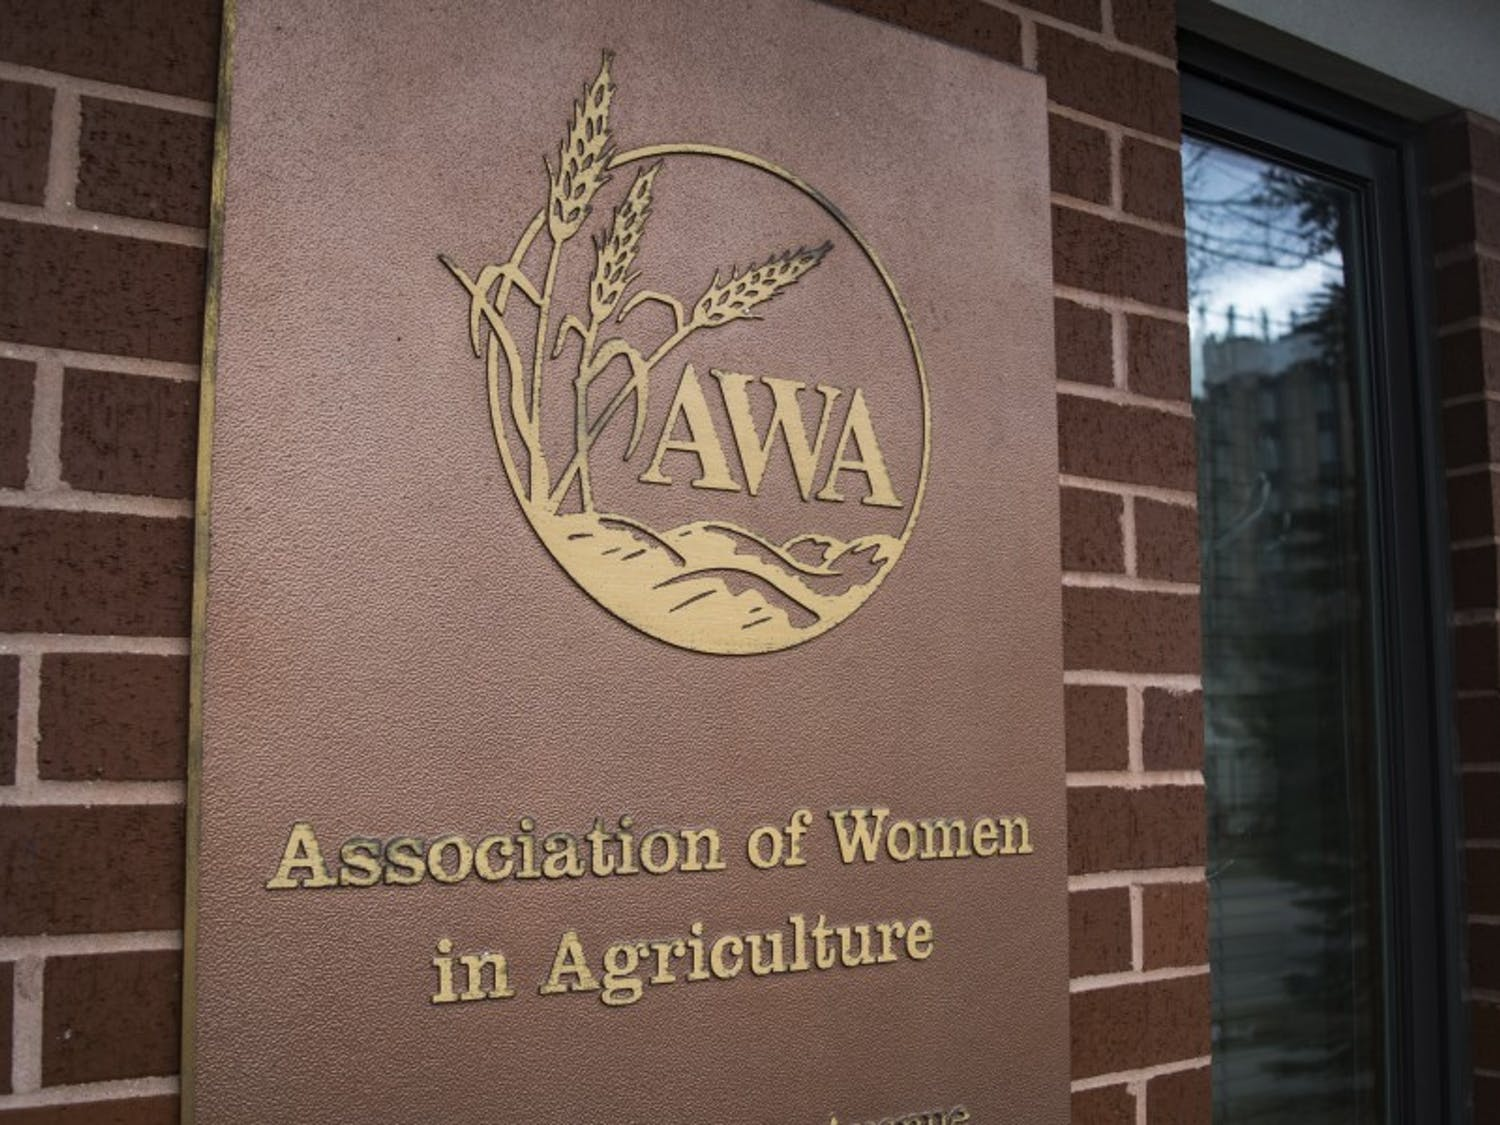 """""""Not only do women make great farmers, but they also bring innovation, new ideas and hard work into this industry,"""" said Association of Women Agriculture Media Relations spokesperson Emily Matzke."""